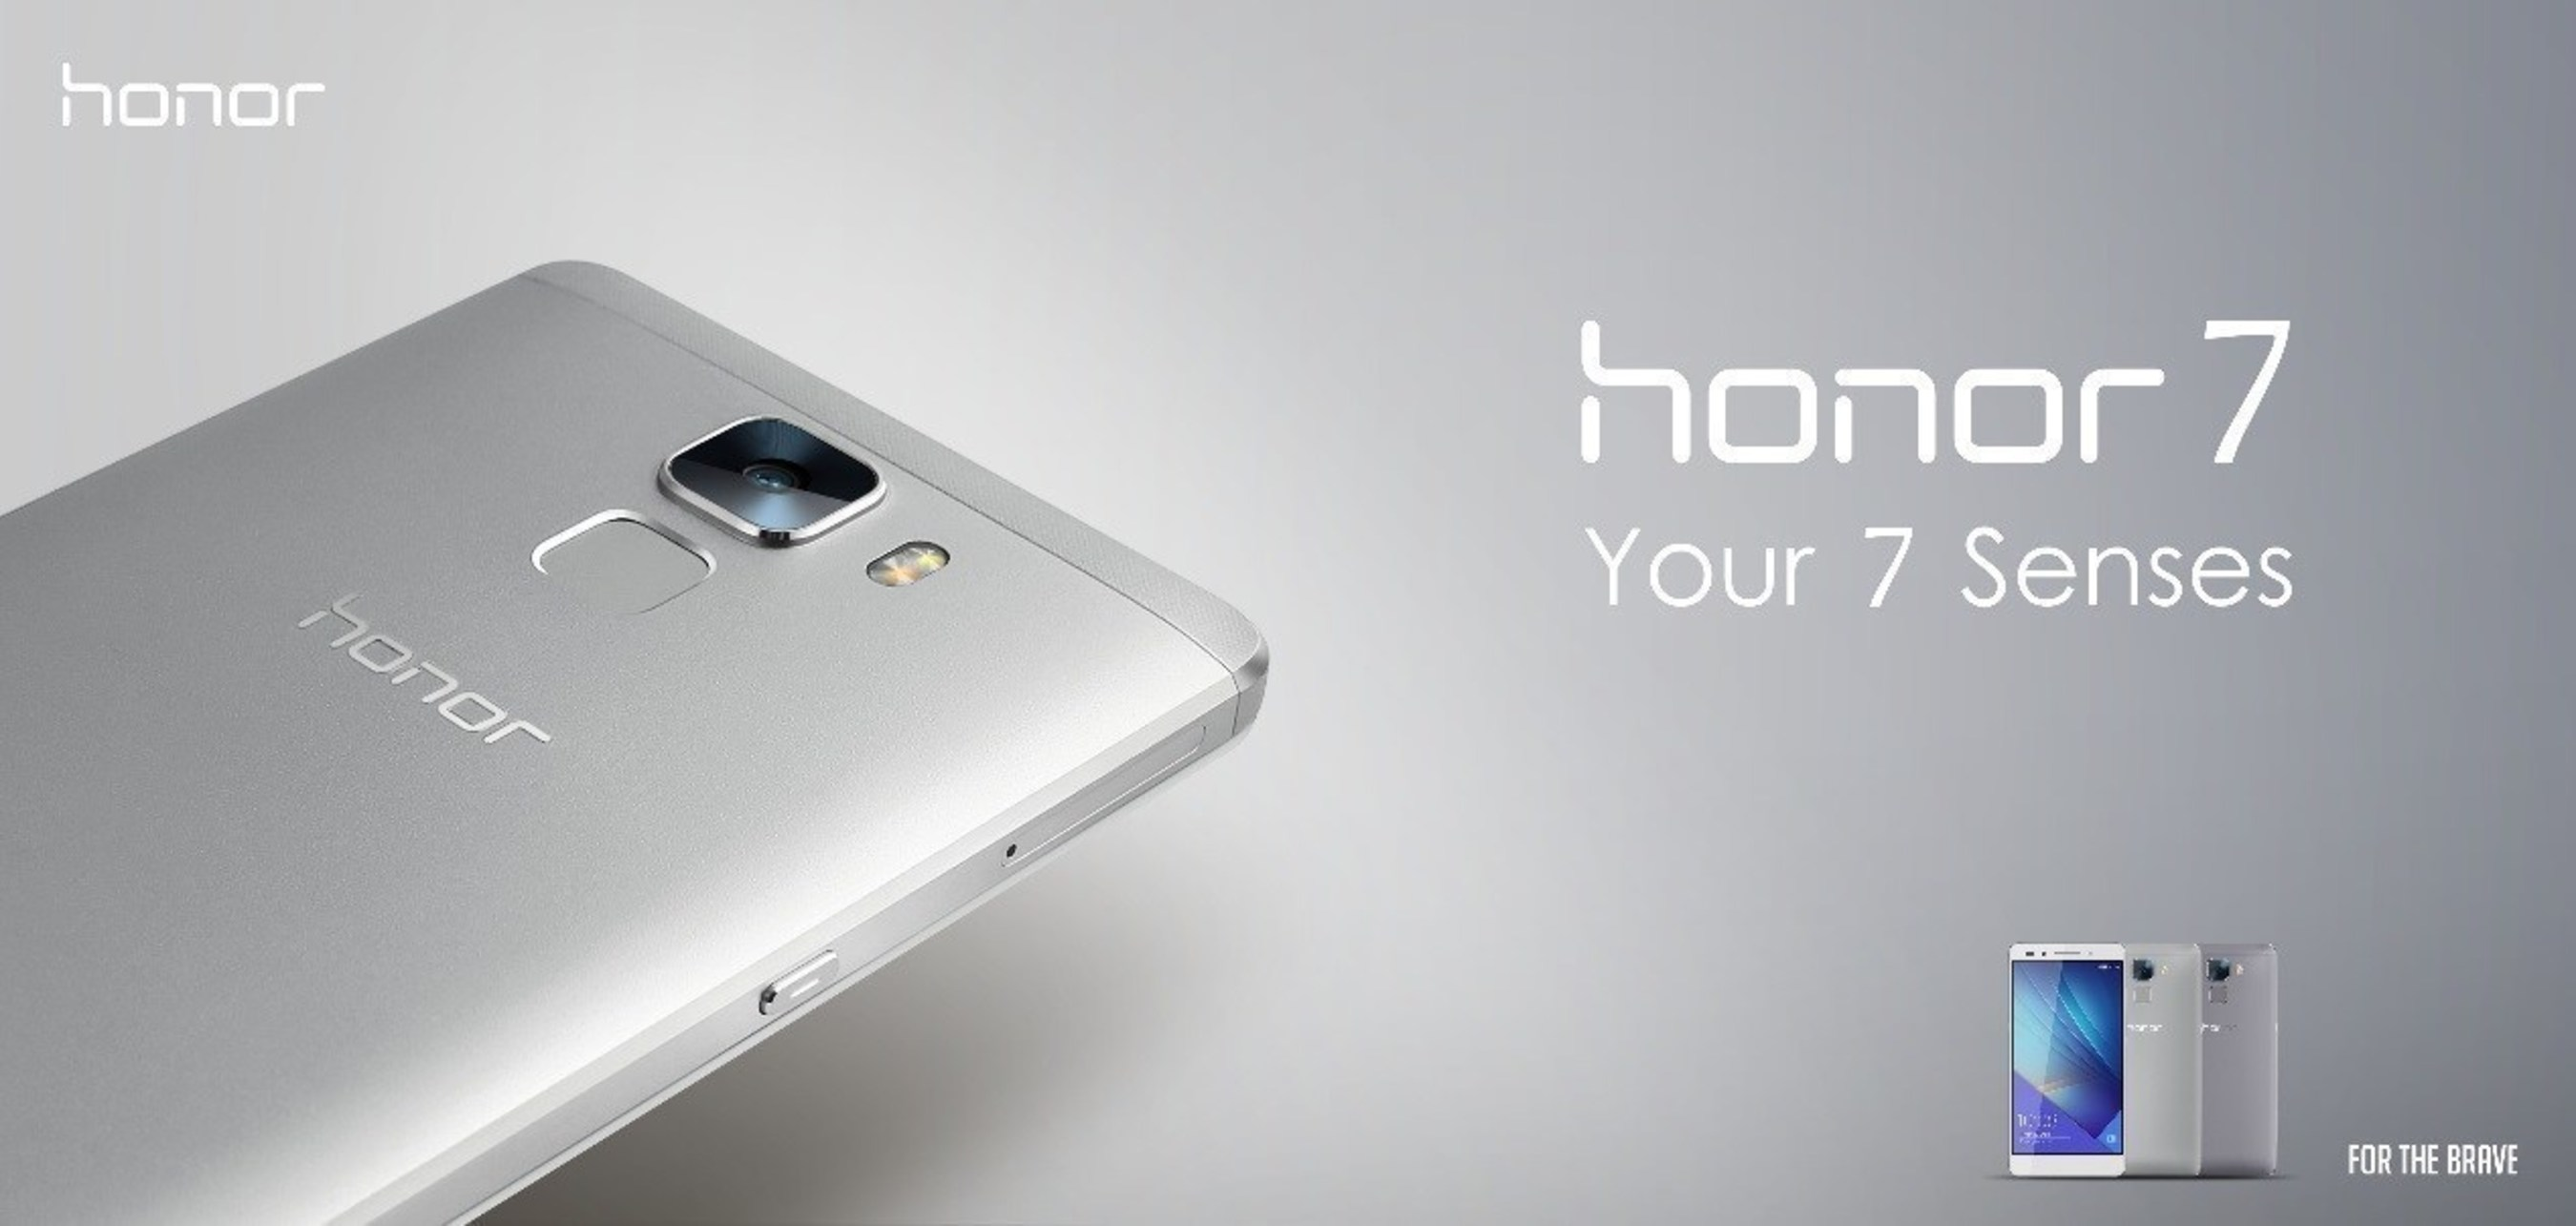 honor 7 Offers Smarts and Styling for Digital Natives in Europe